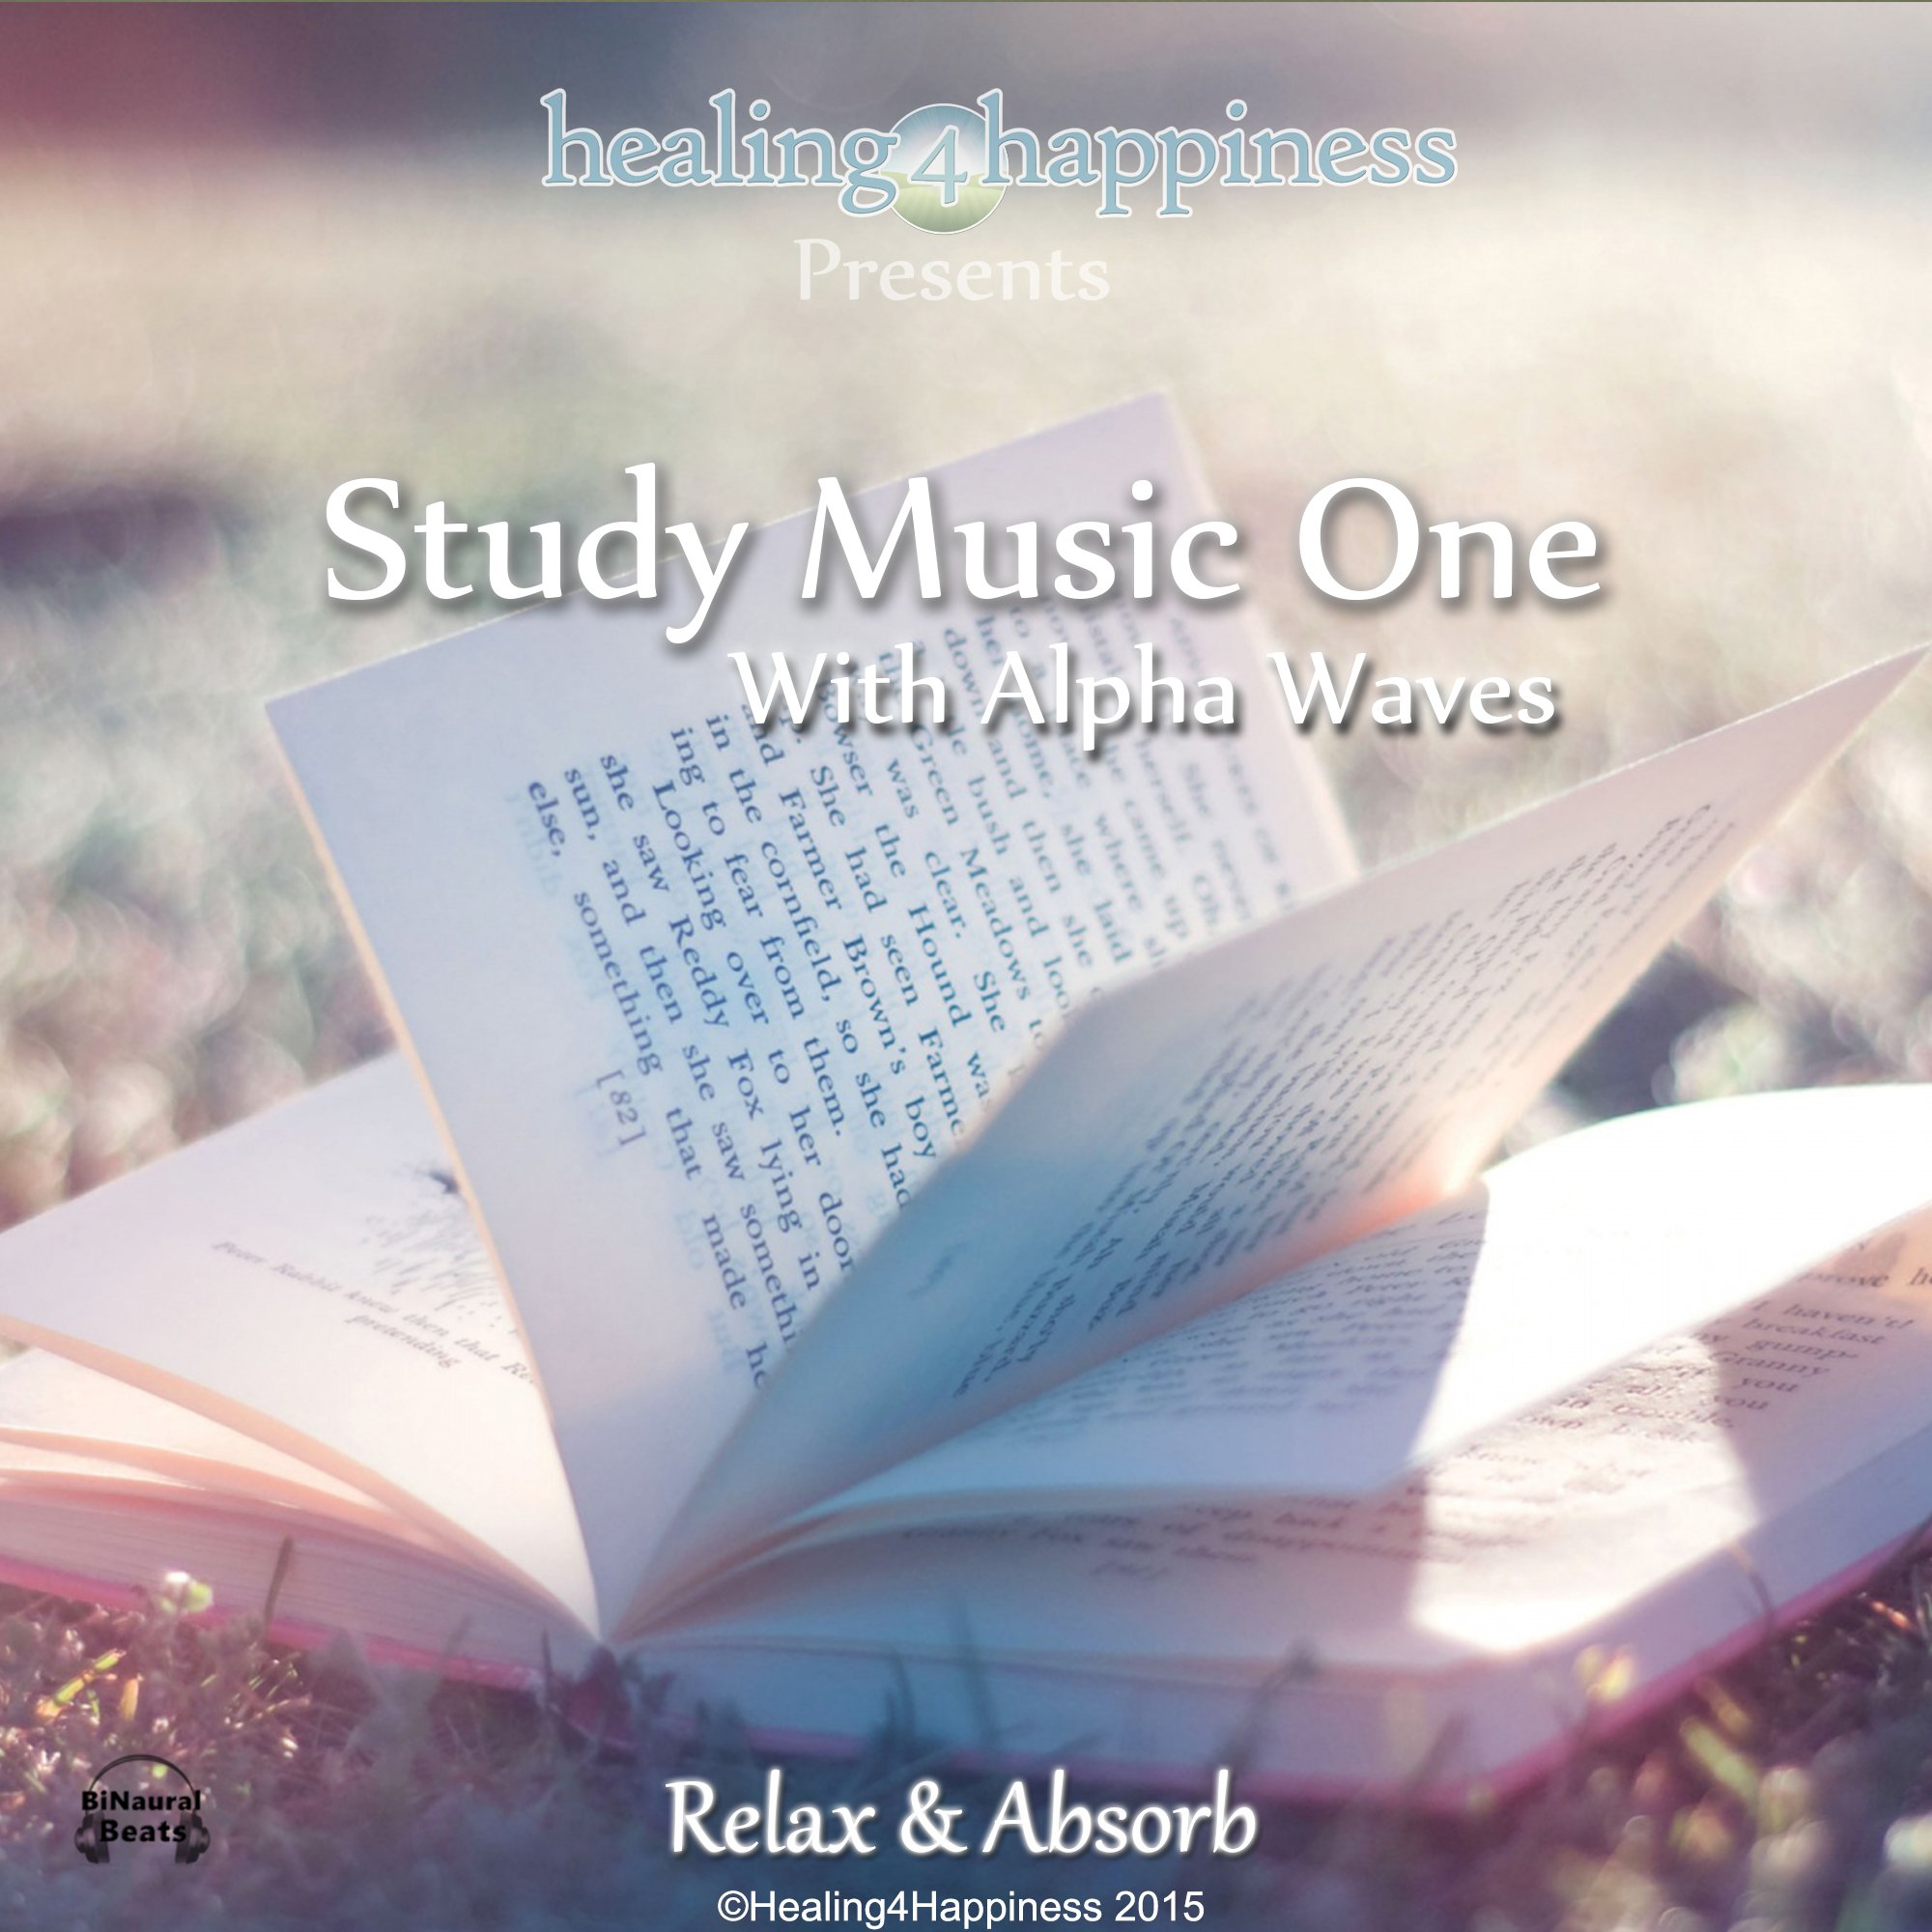 Study music Free Download - BrotherSoft